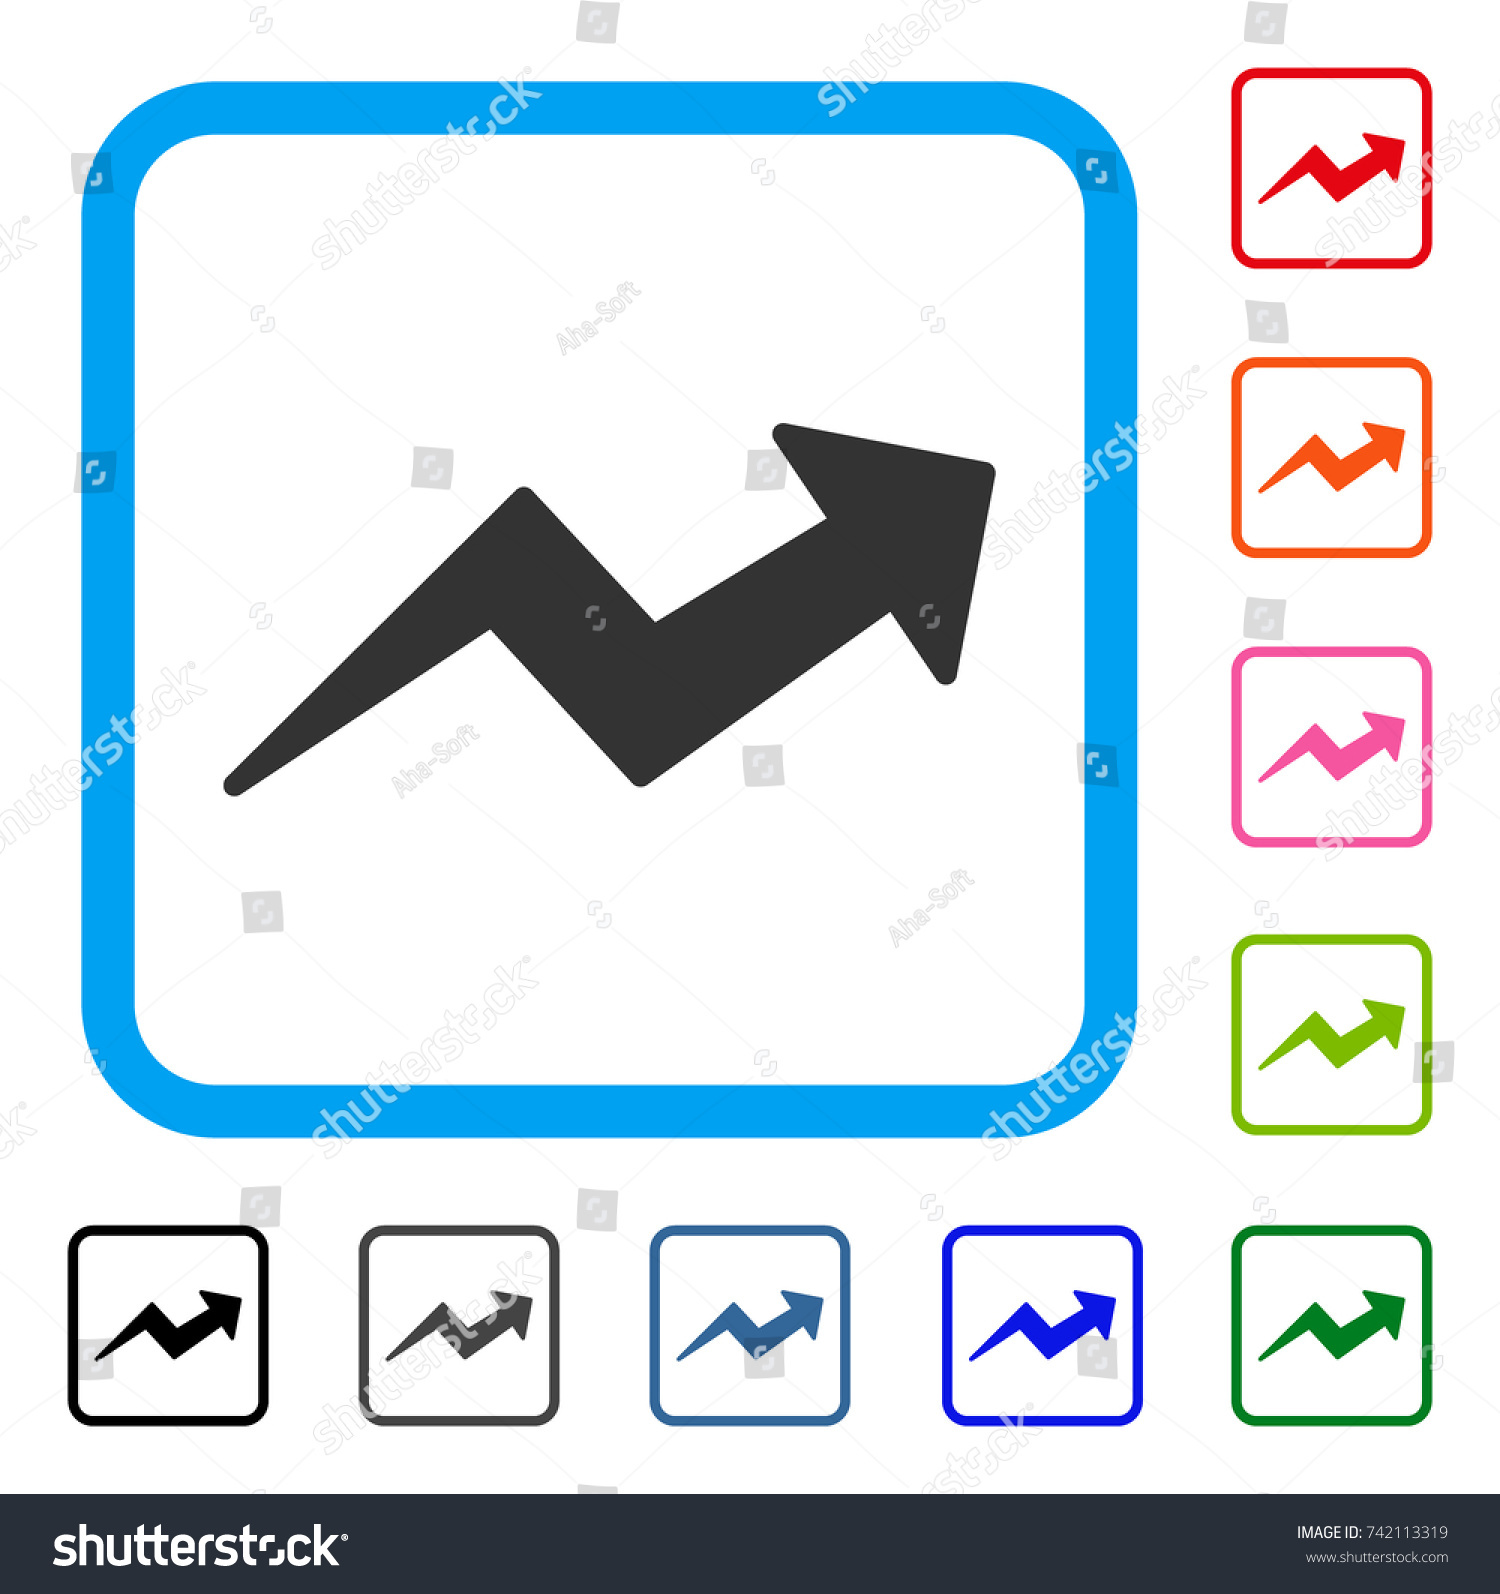 Trend arrow icon flat gray iconic stock vector 742113319 shutterstock trend up arrow icon flat gray iconic symbol in a light blue rounded square buycottarizona Choice Image